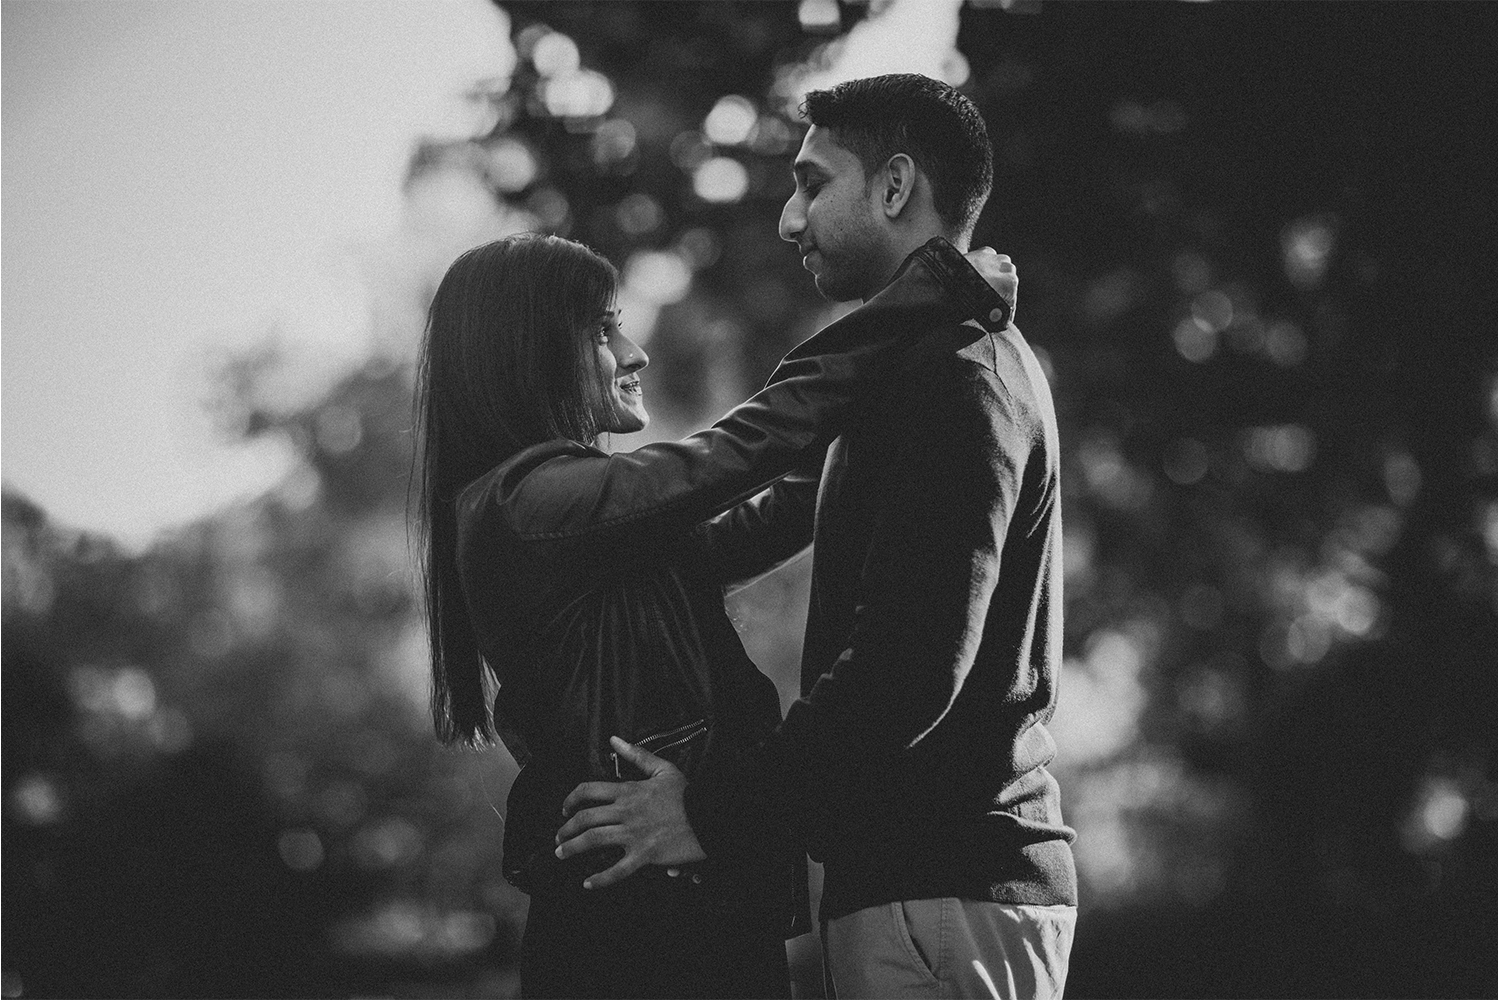 South_Asian_Wedding_Photography_Engagement_Session_002.jpg